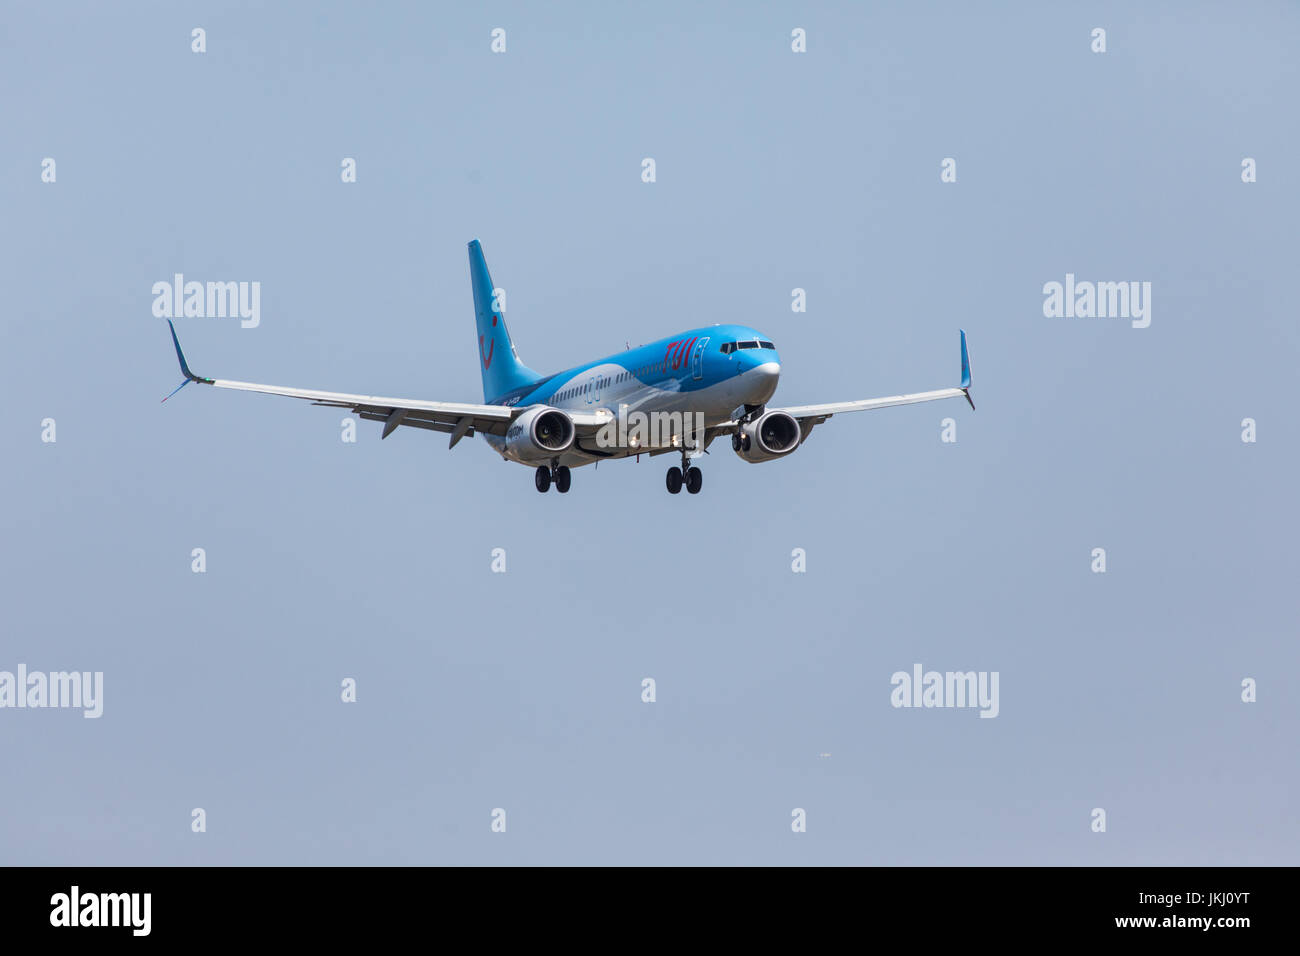 FARO, PORTUGAL - Juny 18, 2017 : Tui Flights aeroplane landing on Faro International Airport. Airport - Stock Image